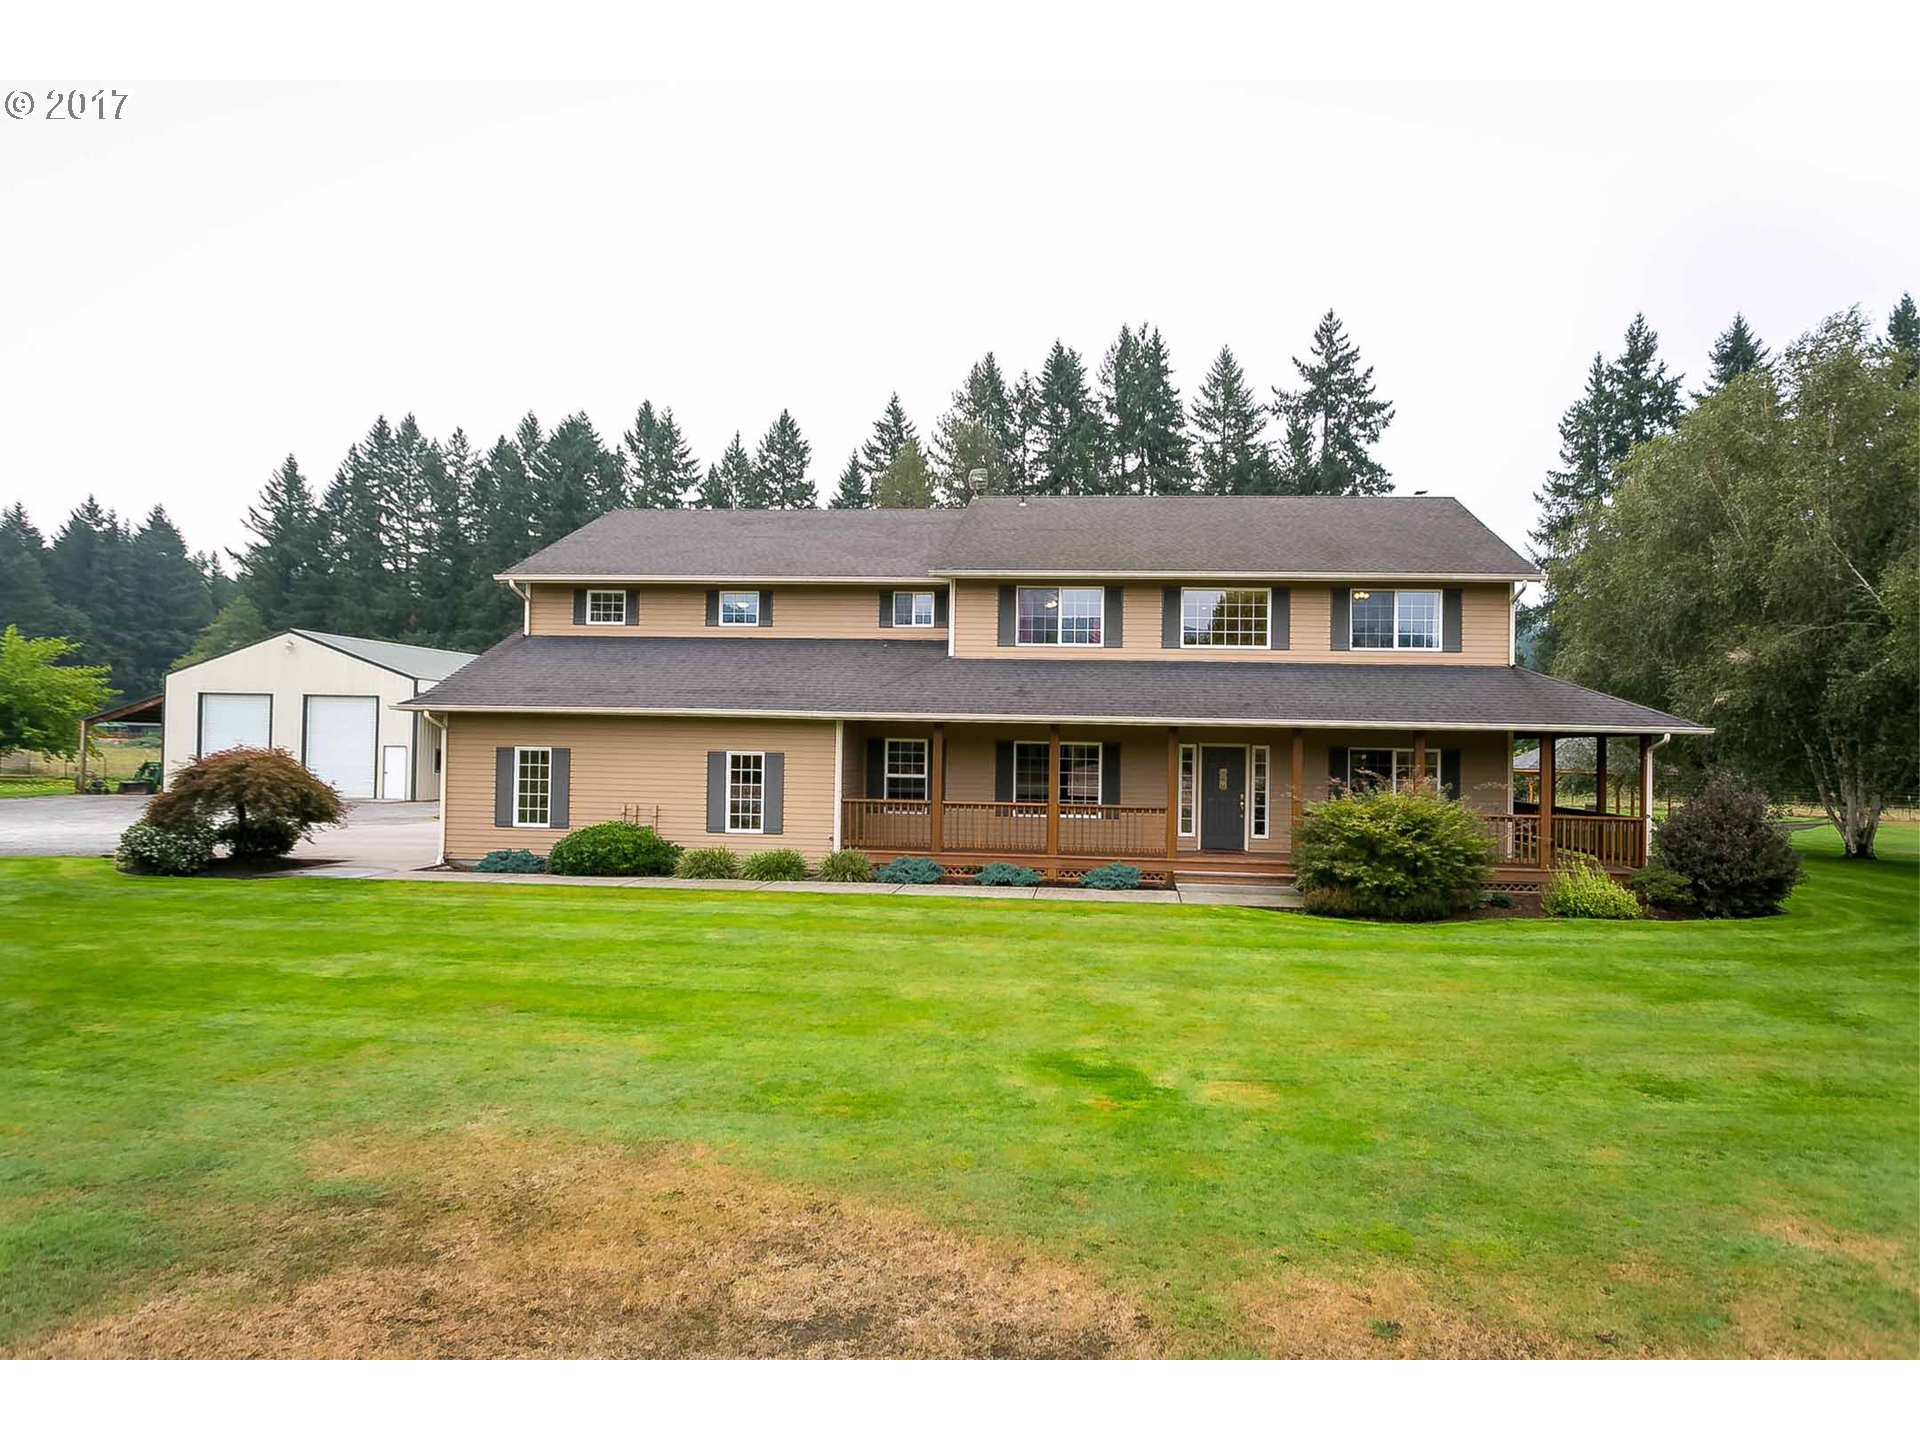 217 NW 432nd St, Woodland, WA 98674